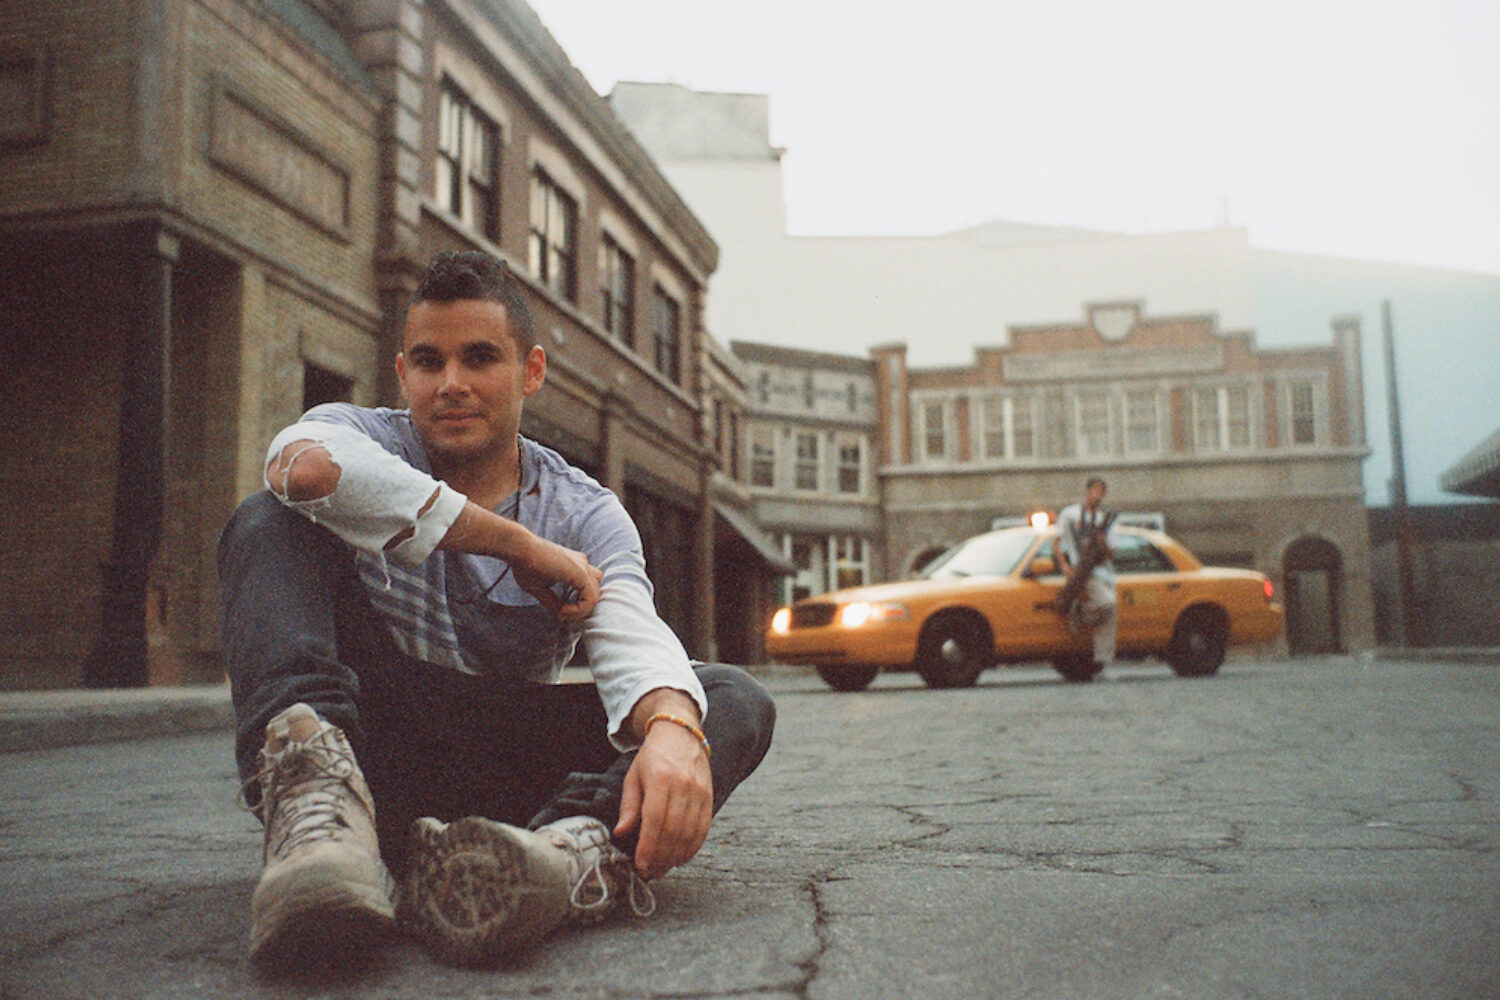 Rostam: The Only Constant Is Change